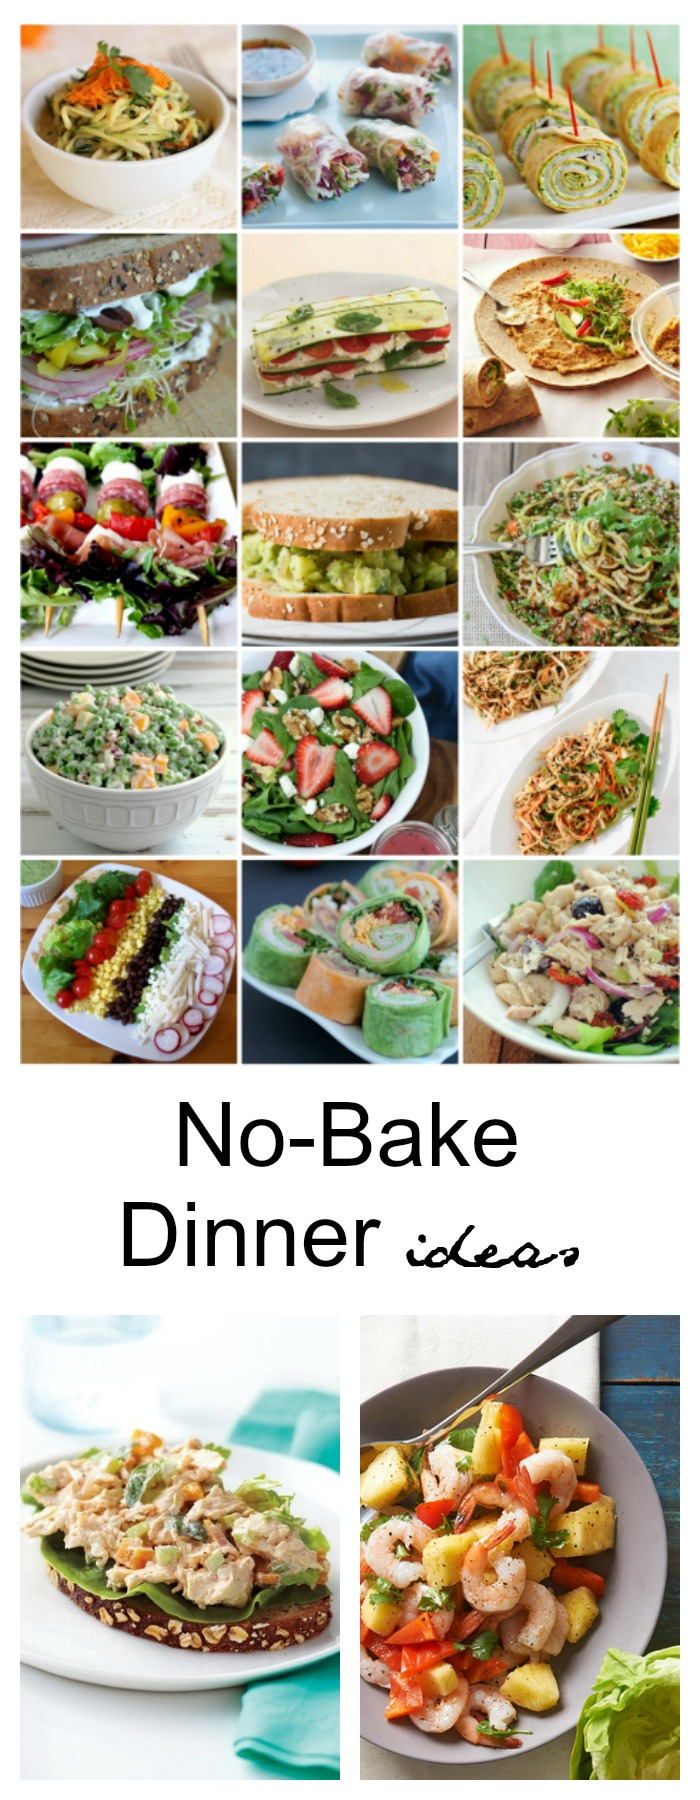 No-Bake-Dinner-Ideas-Pin